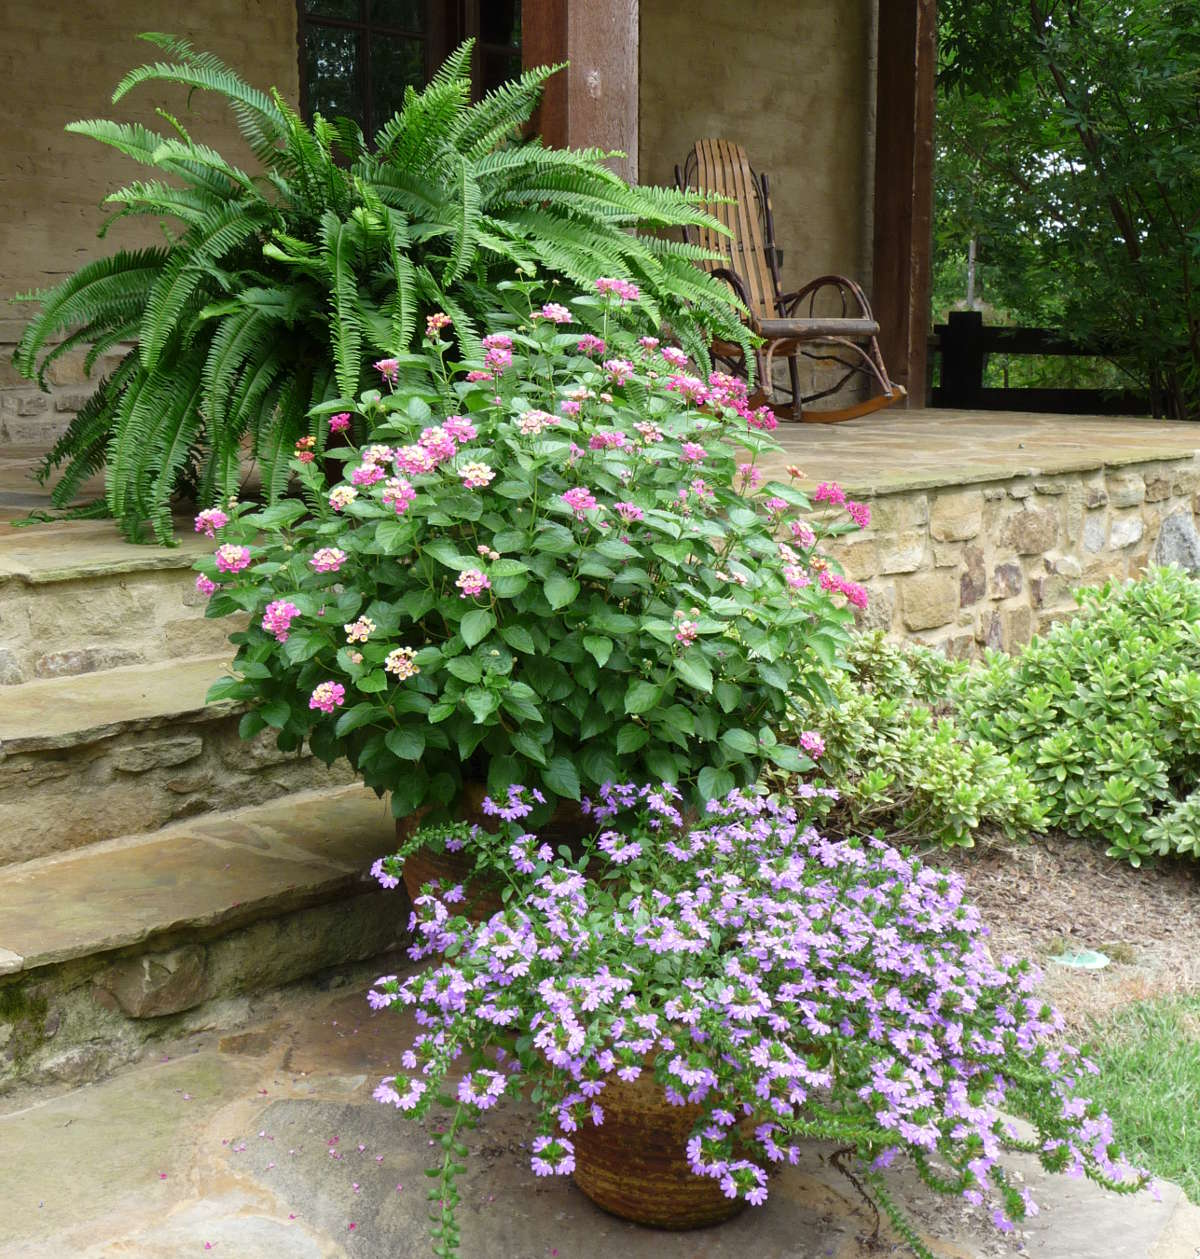 cottage gardening - terra cotta pots with flowering annuals and ferns - Atticmag